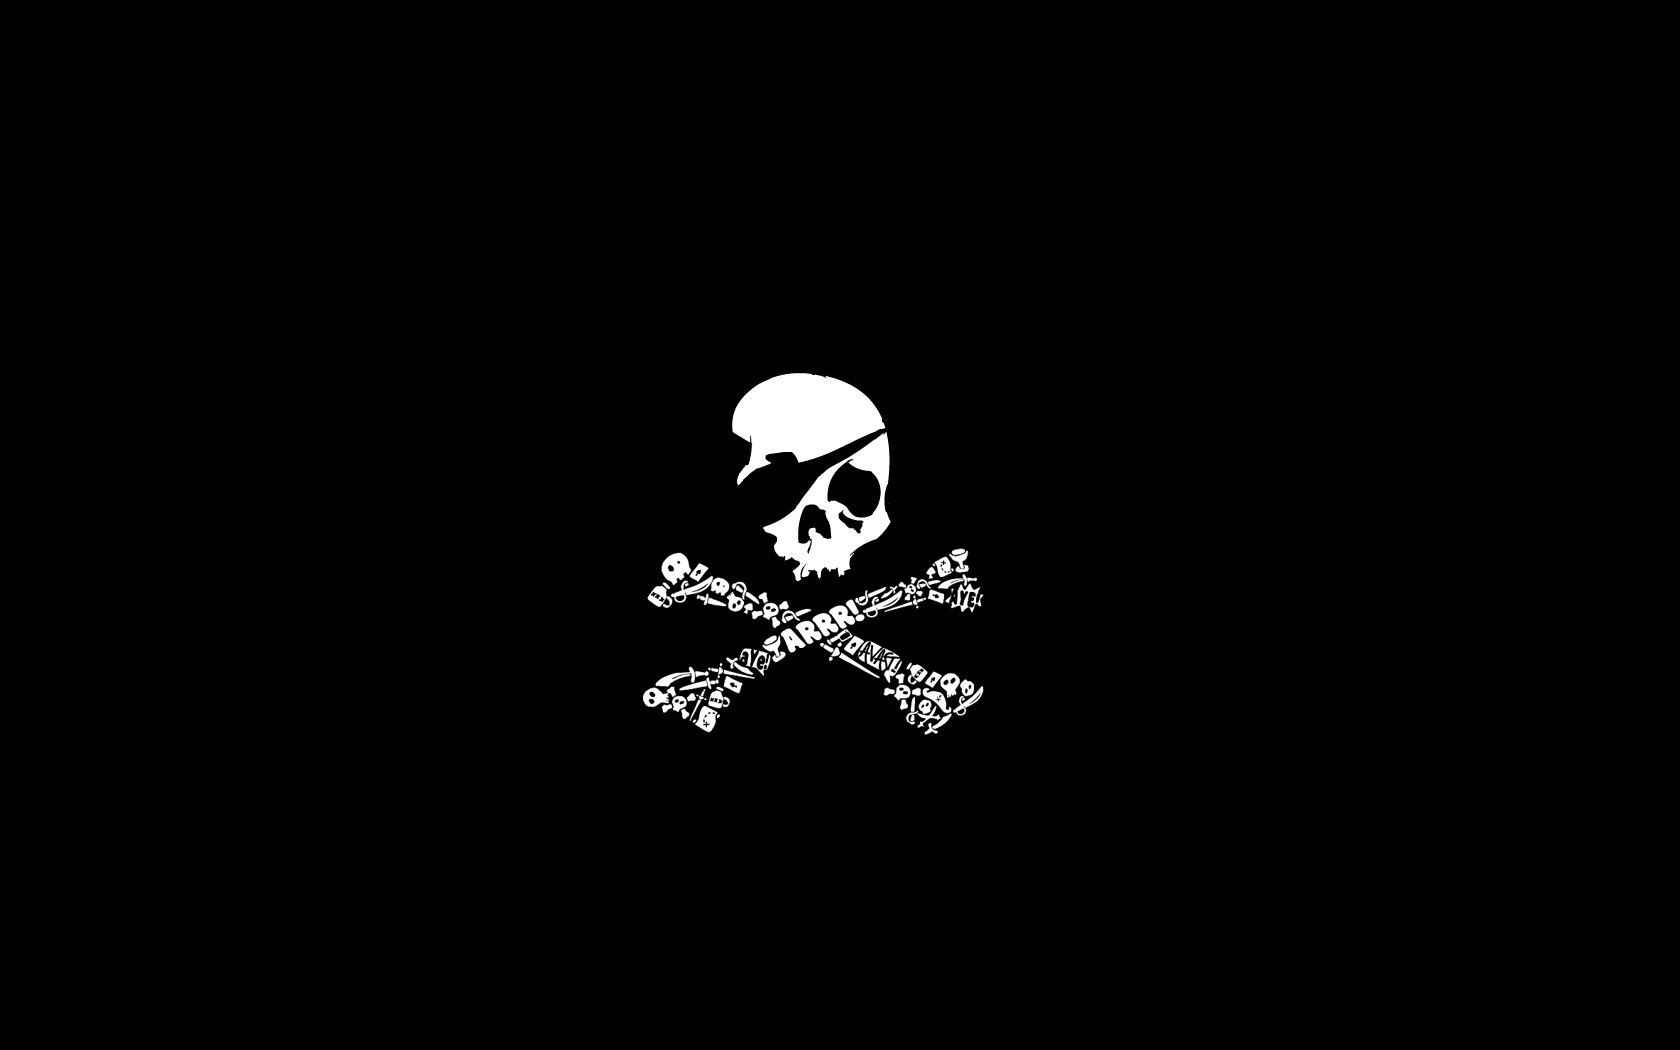 Pirate Skull Wallpapers Top Free Pirate Skull Backgrounds